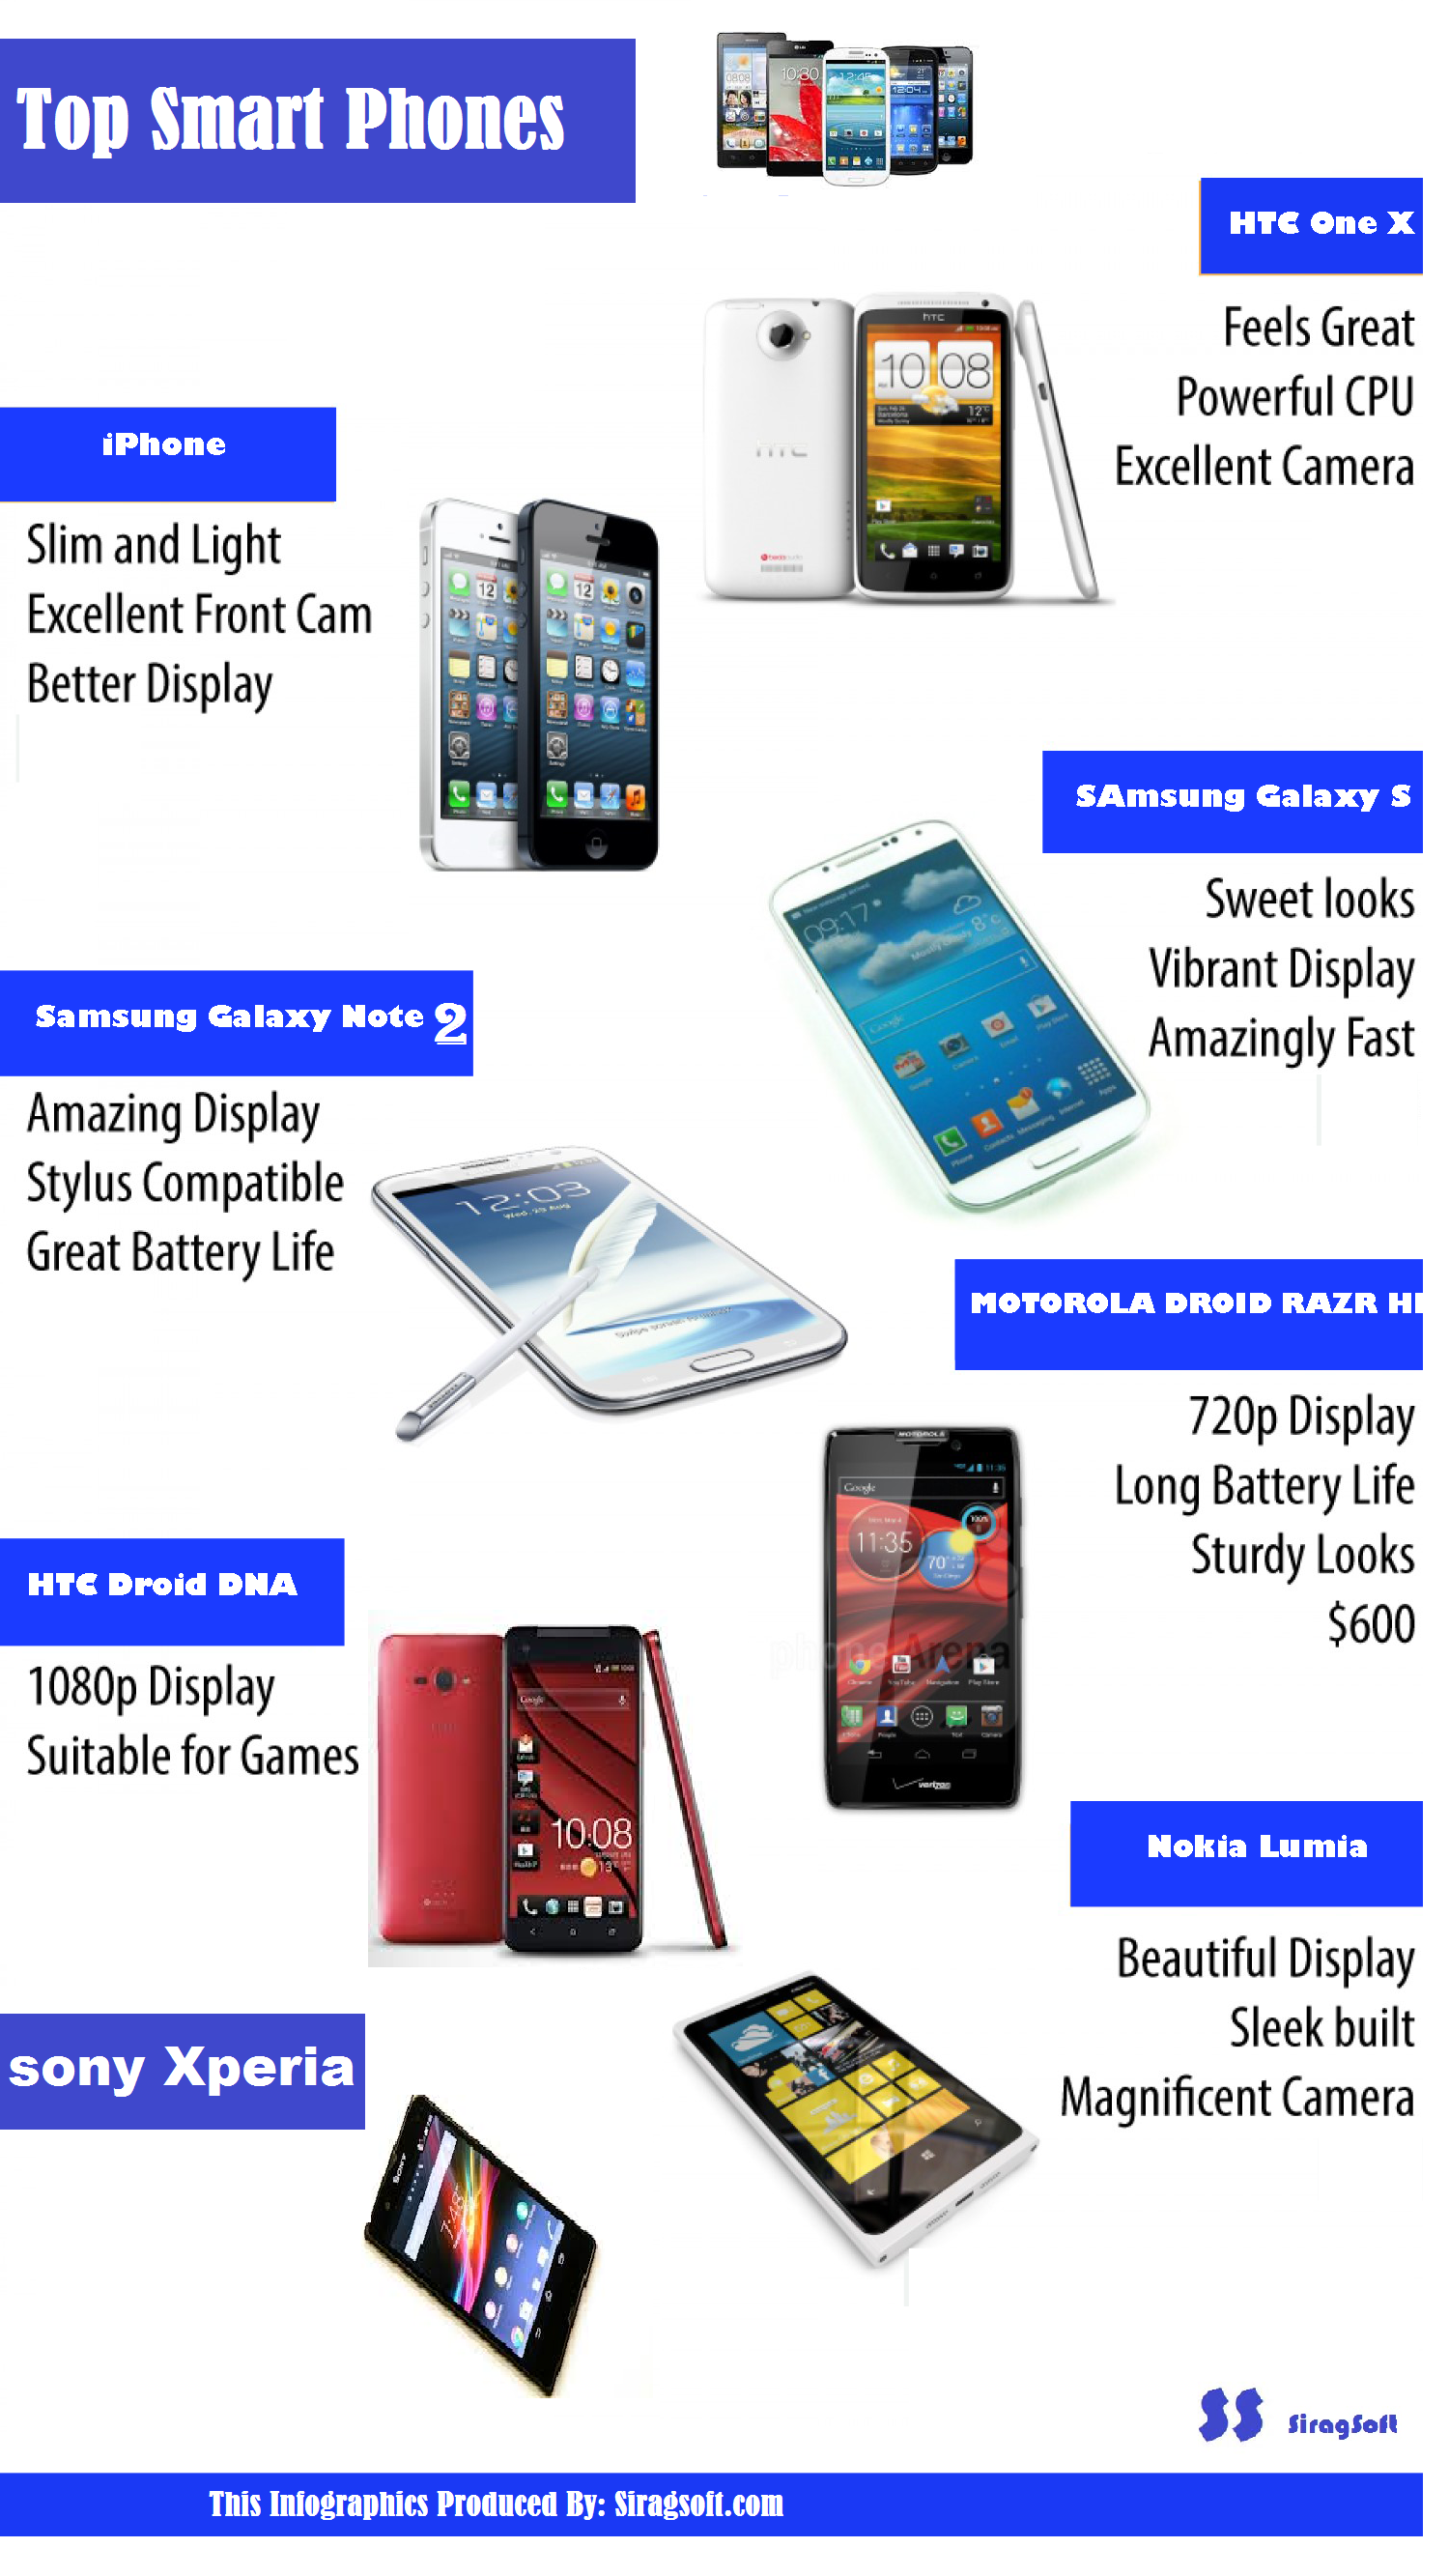 Top Smartphone for 2013 Infographic